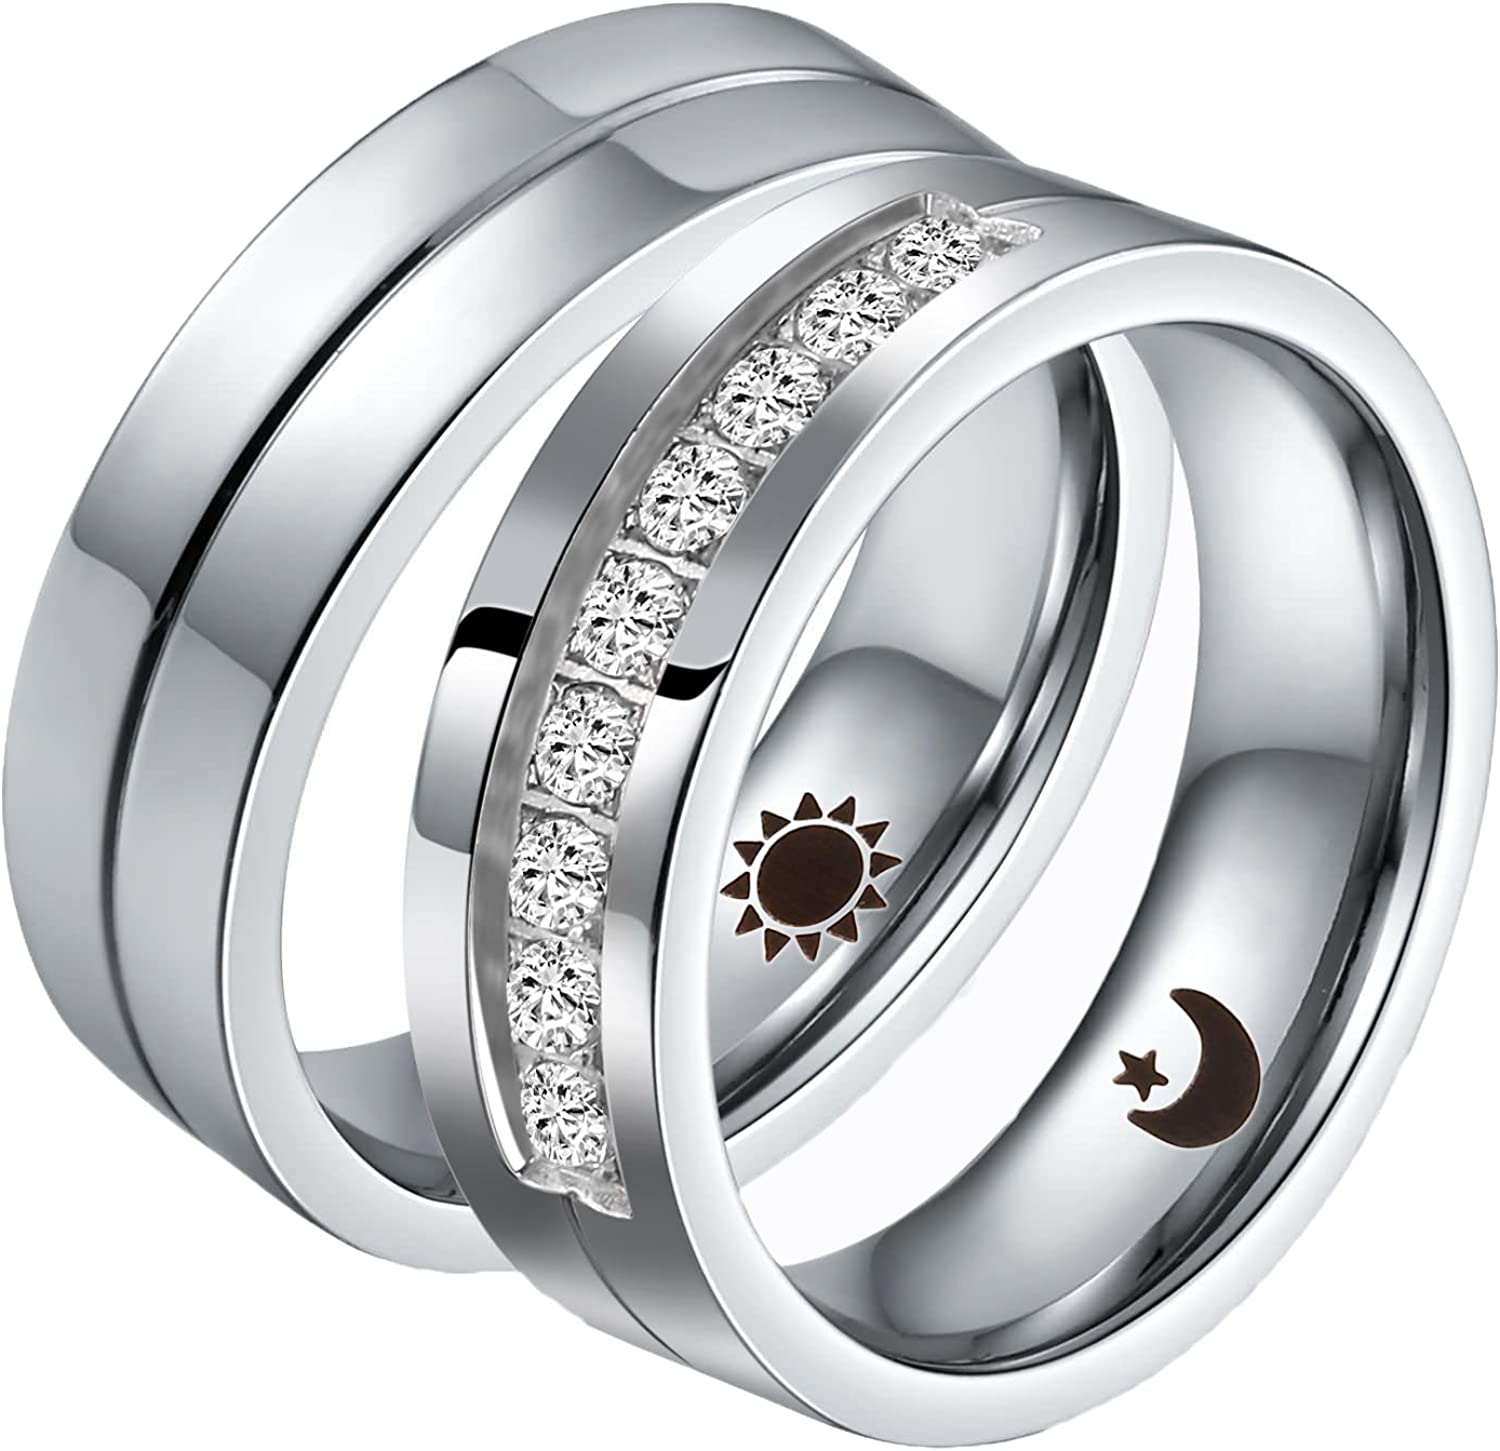 Aeici Stainless Steel Rings for Women Men Couple Ring Matching Set Wedding Bands Cubic Zirconia CZ Silver